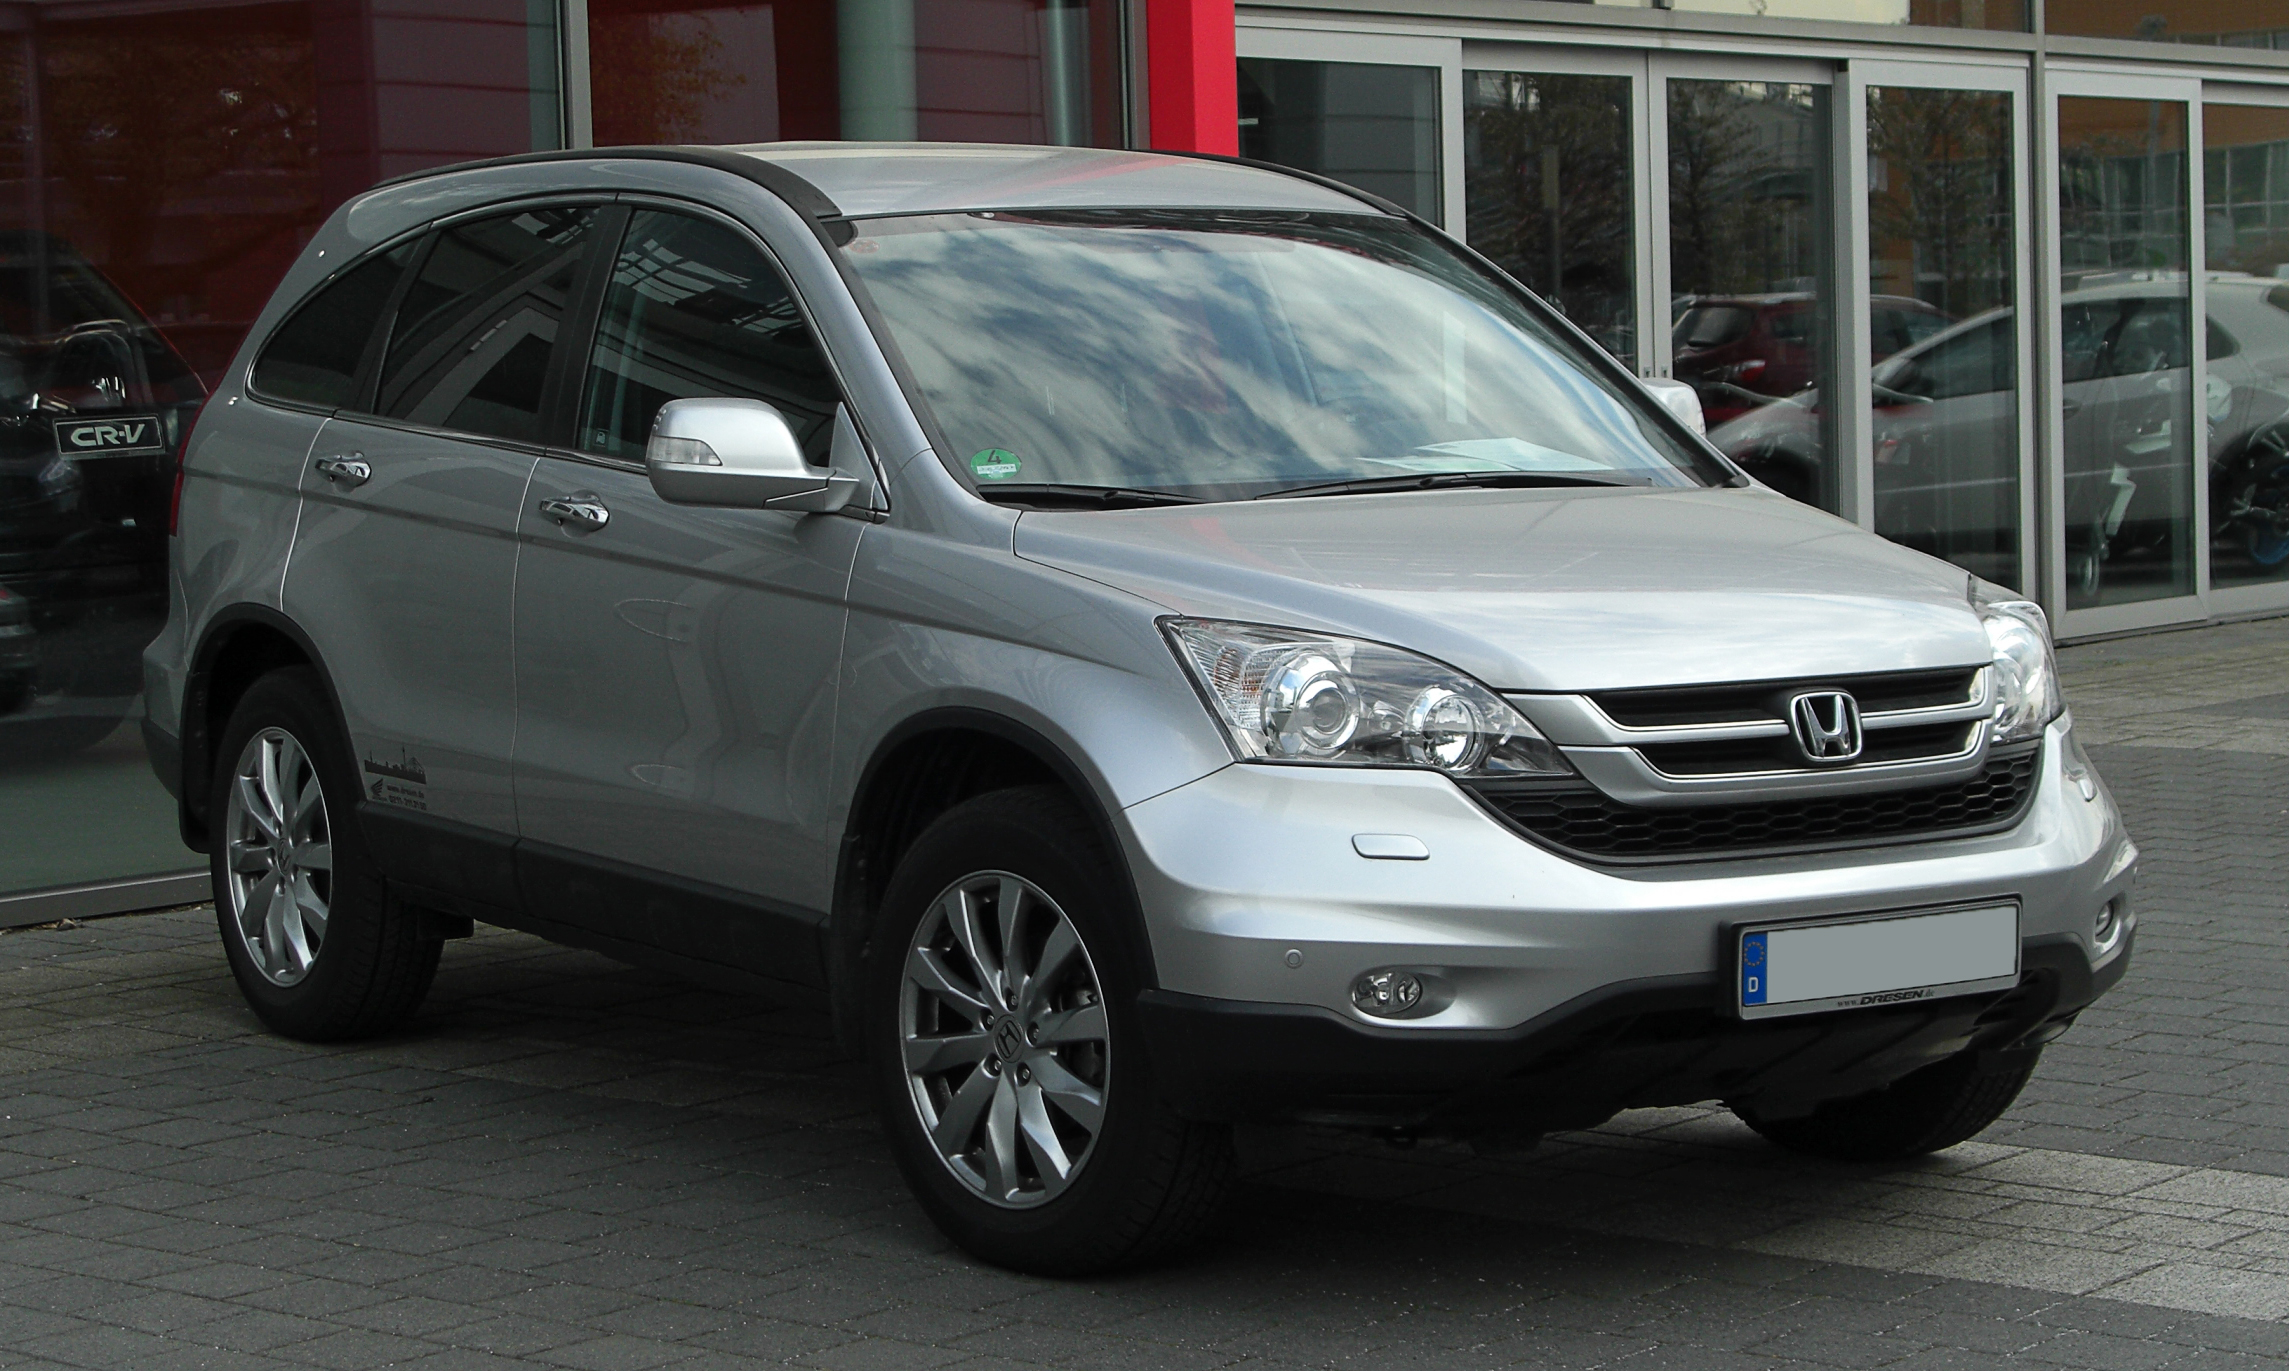 Honda Crv 2007 Autos Post